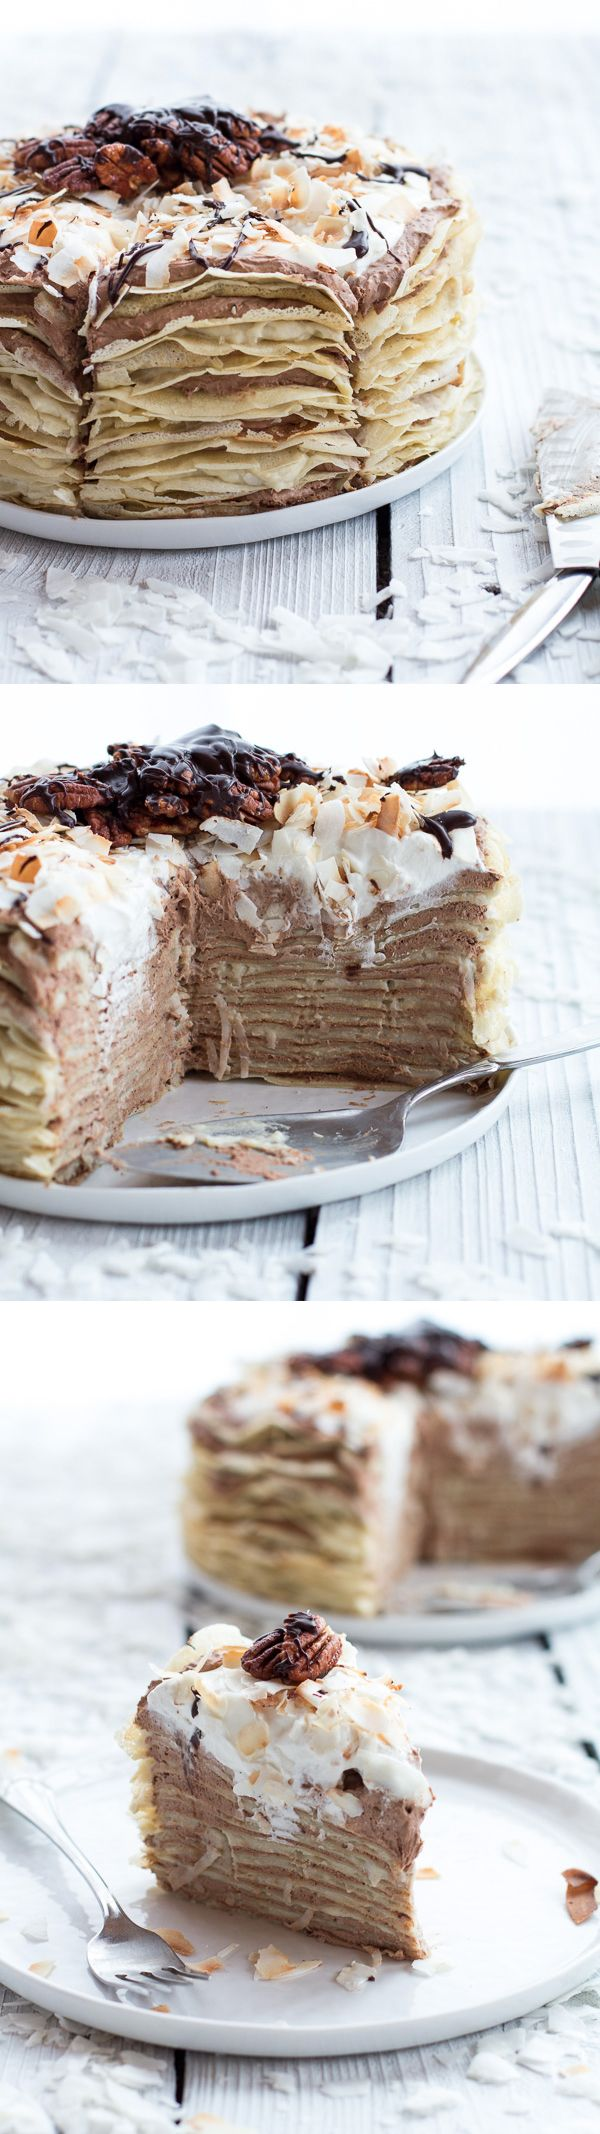 chocolate mousse rum crepe cake recipe layers pancakes kremsnite torta recept how to easy better baking bible blog